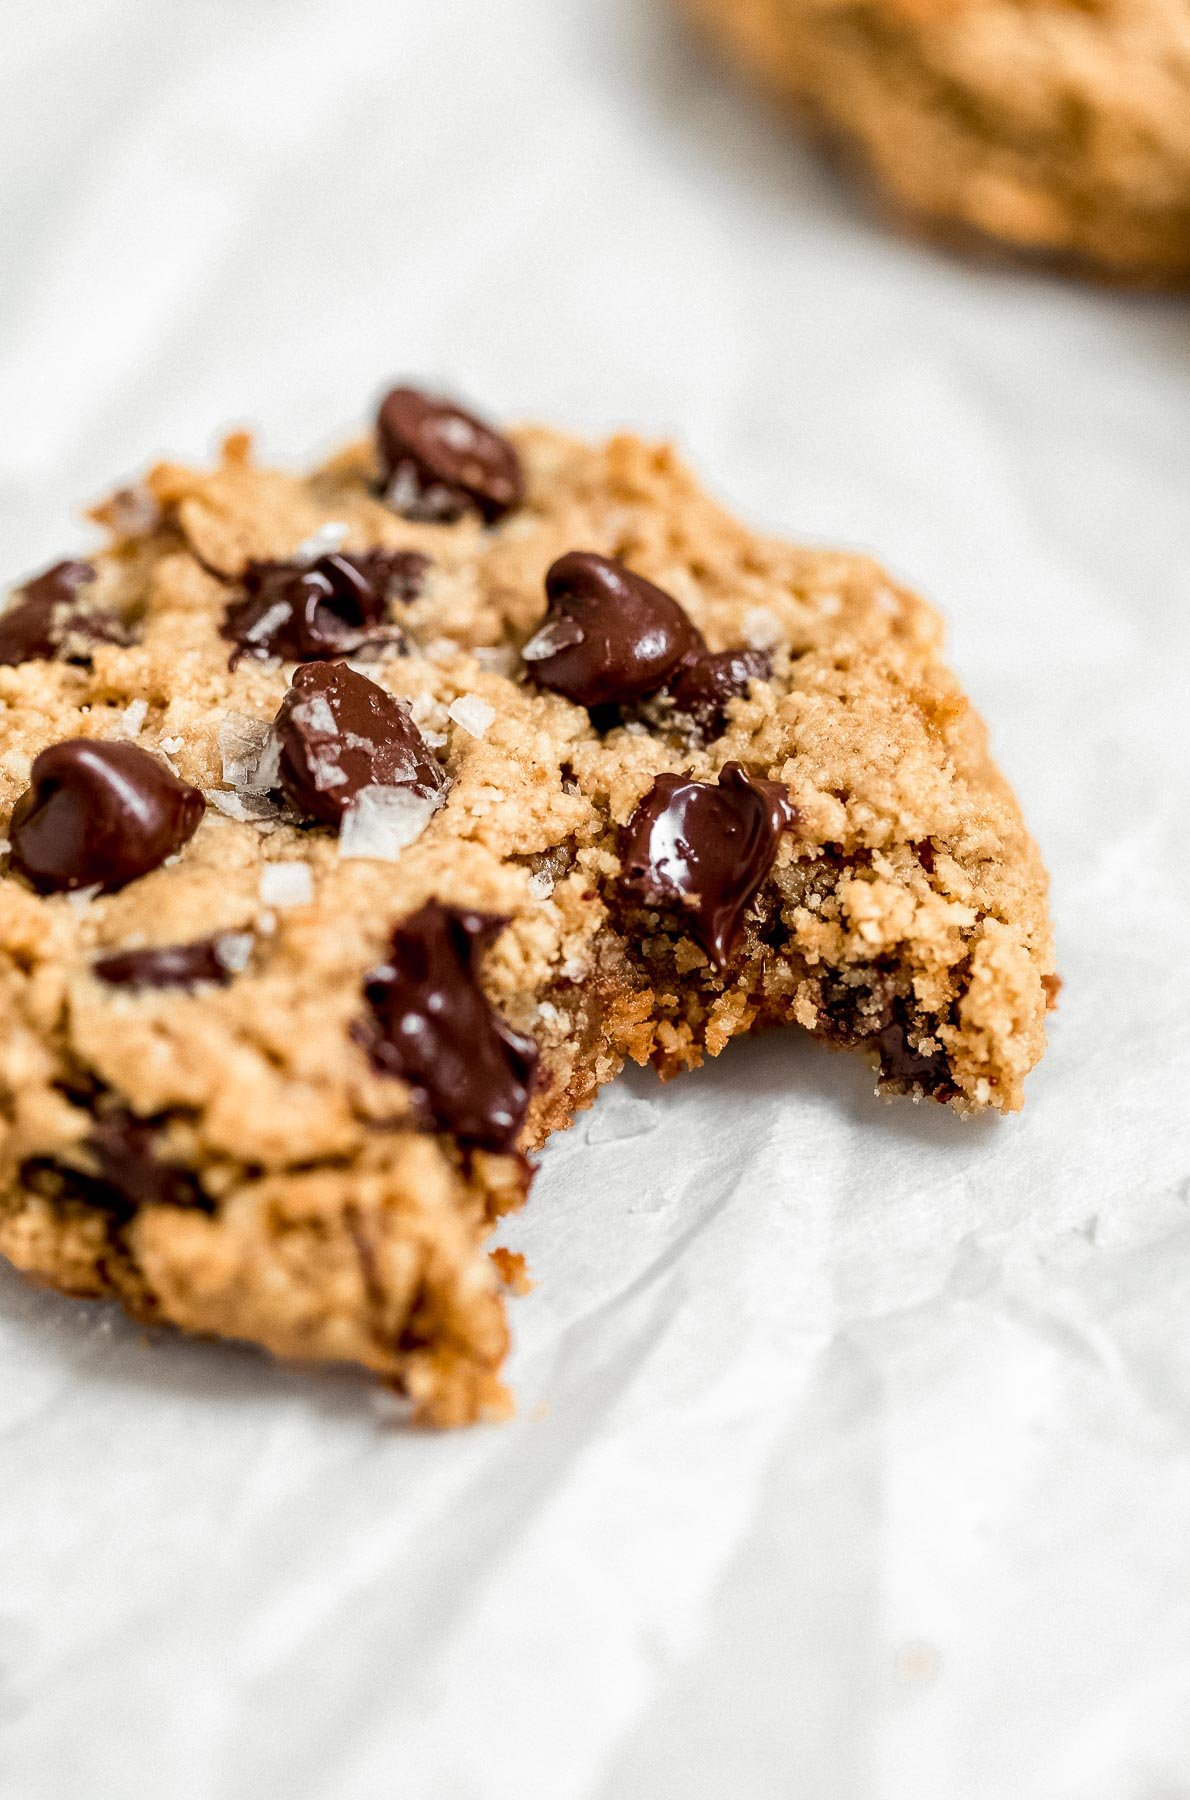 Healthy chocolate chip cookie with a bite taken out to show texture.